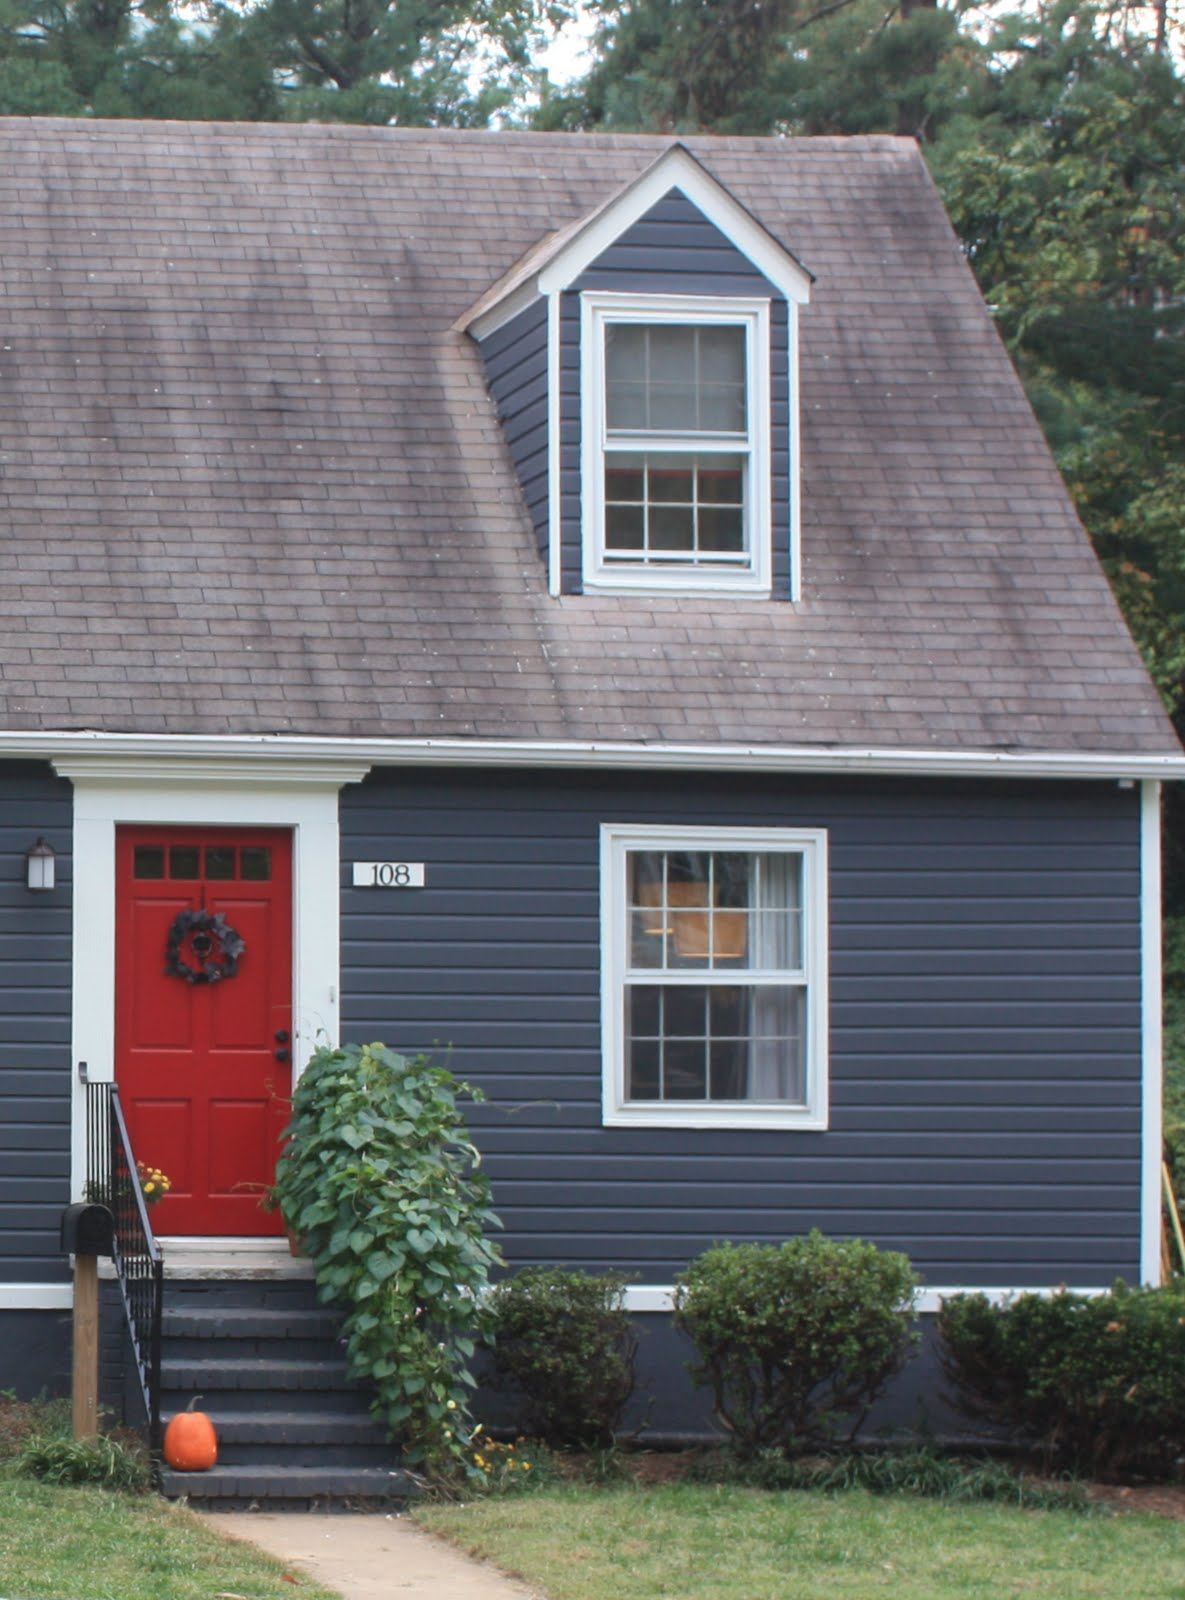 Dried figs and wooden spools blue house red door - White exterior paint color schemes ...